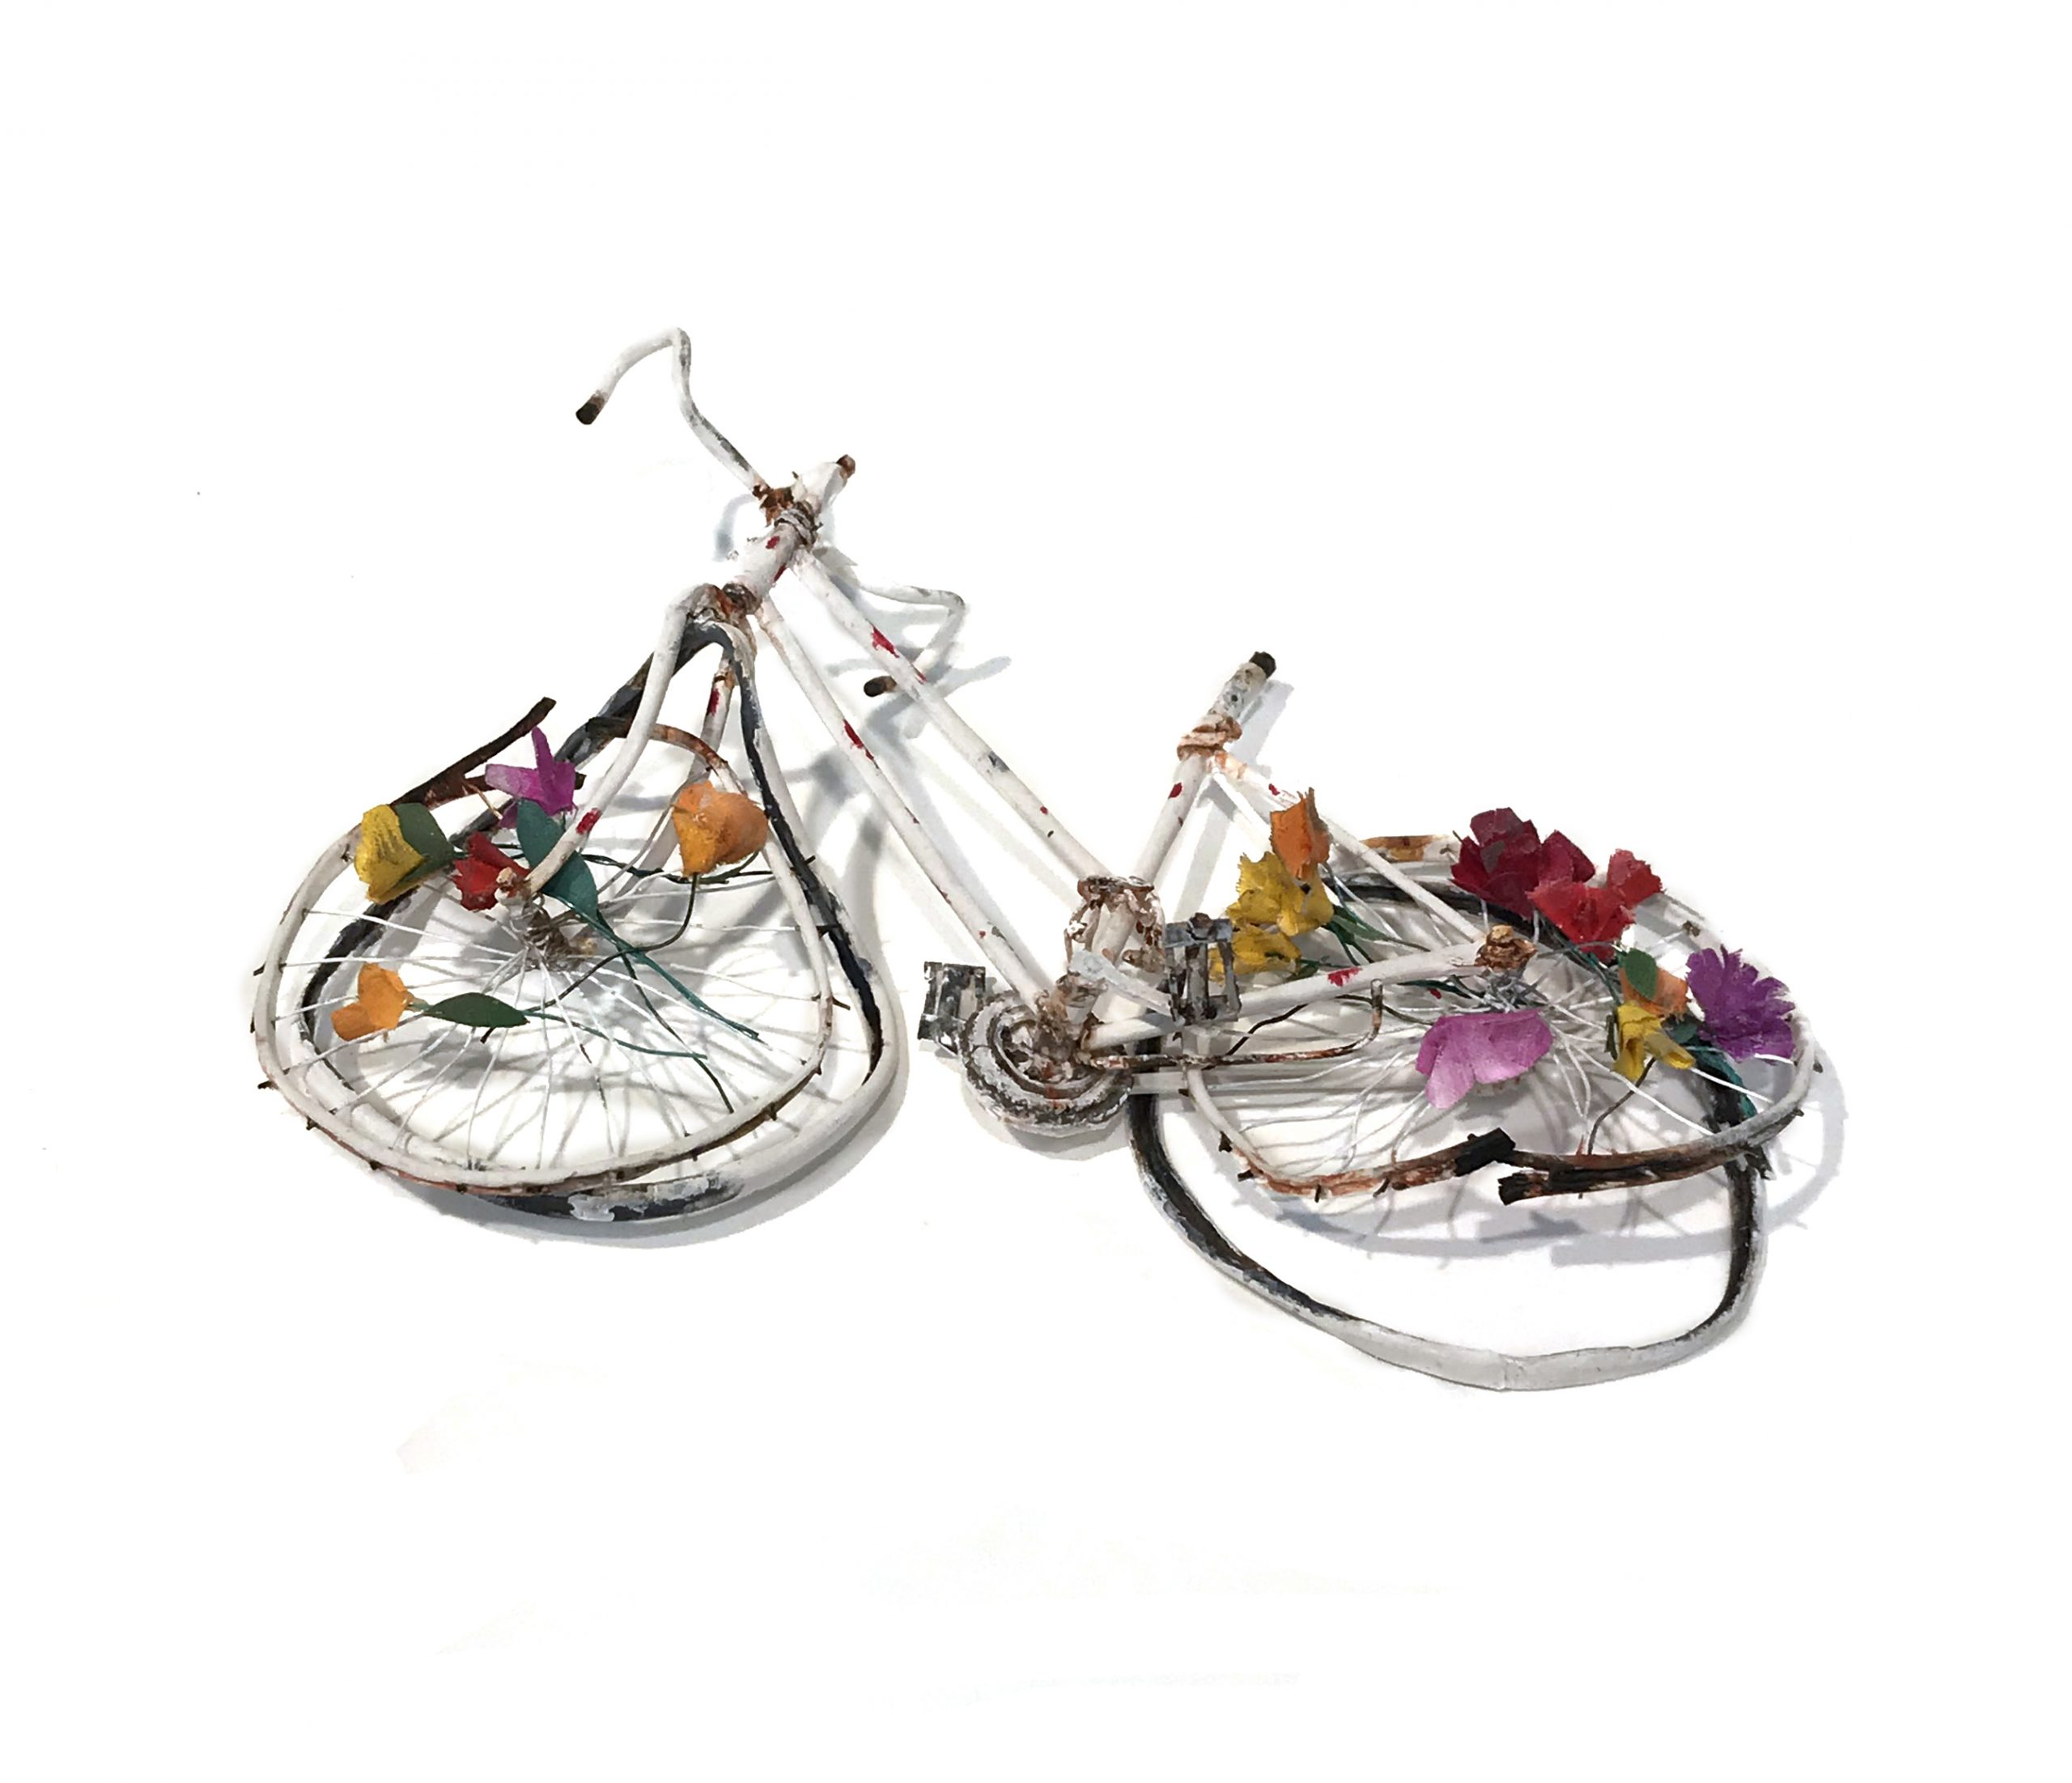 Rachel Grobstein, Ghost Bike, 2019, on view in a group exhibition, at BRIC in the Main Gallery in a group exhibition, Death Becomes Her, co-curated and in partnership with The Green-Wood Cemetery.